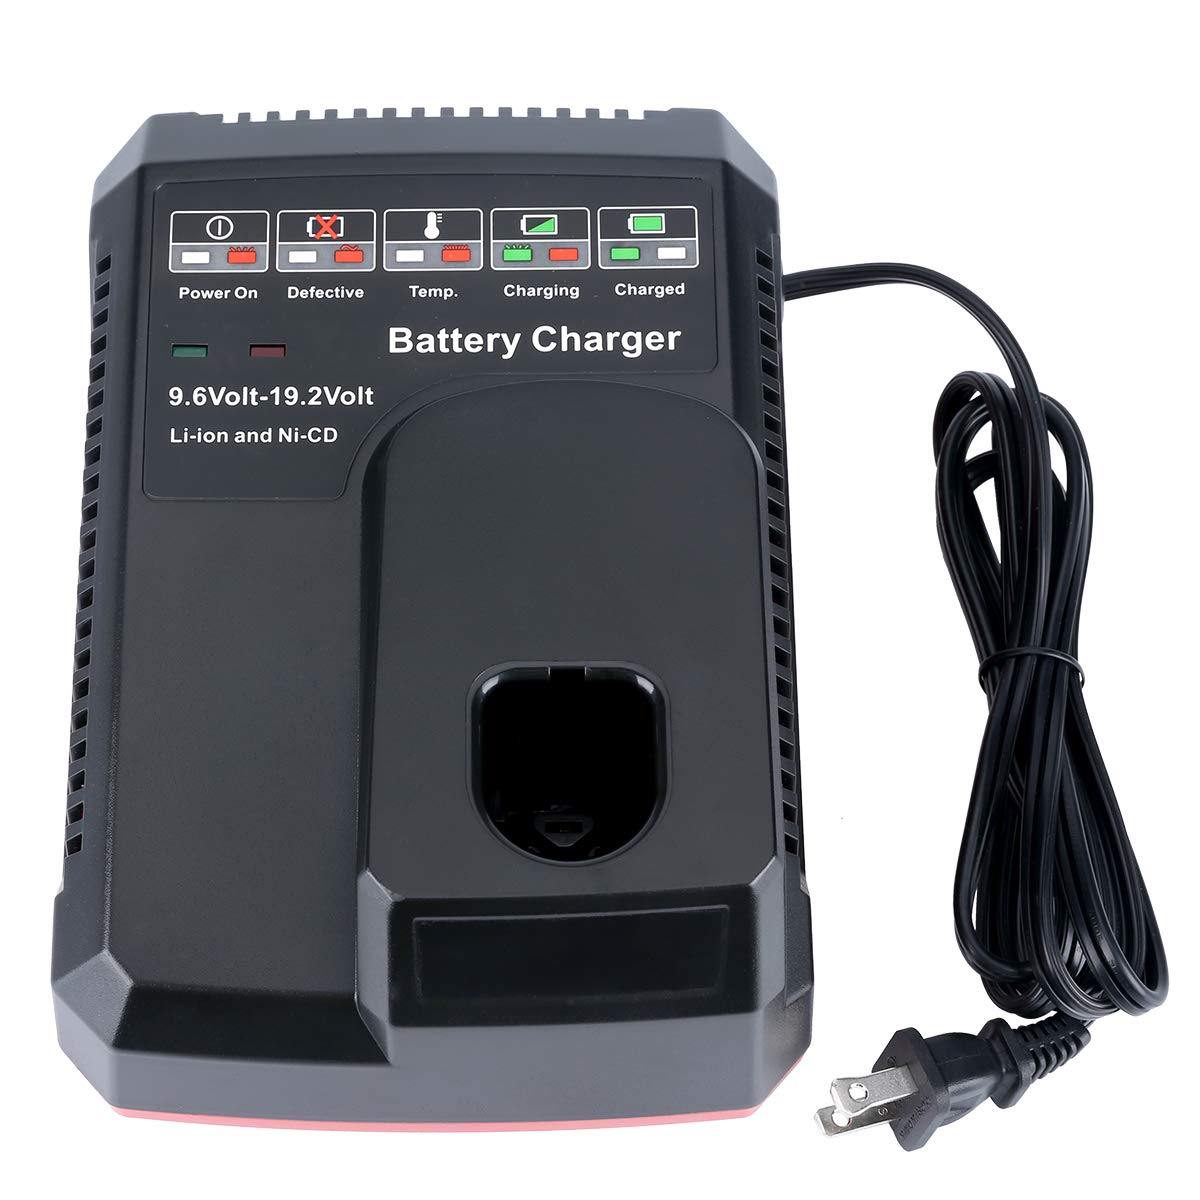 19.2 volt Lithium-Ion & Ni-cad Battery Charger for Craftsman DieHard C3 315.115410 315.11485 130235021 130235021 CRA01